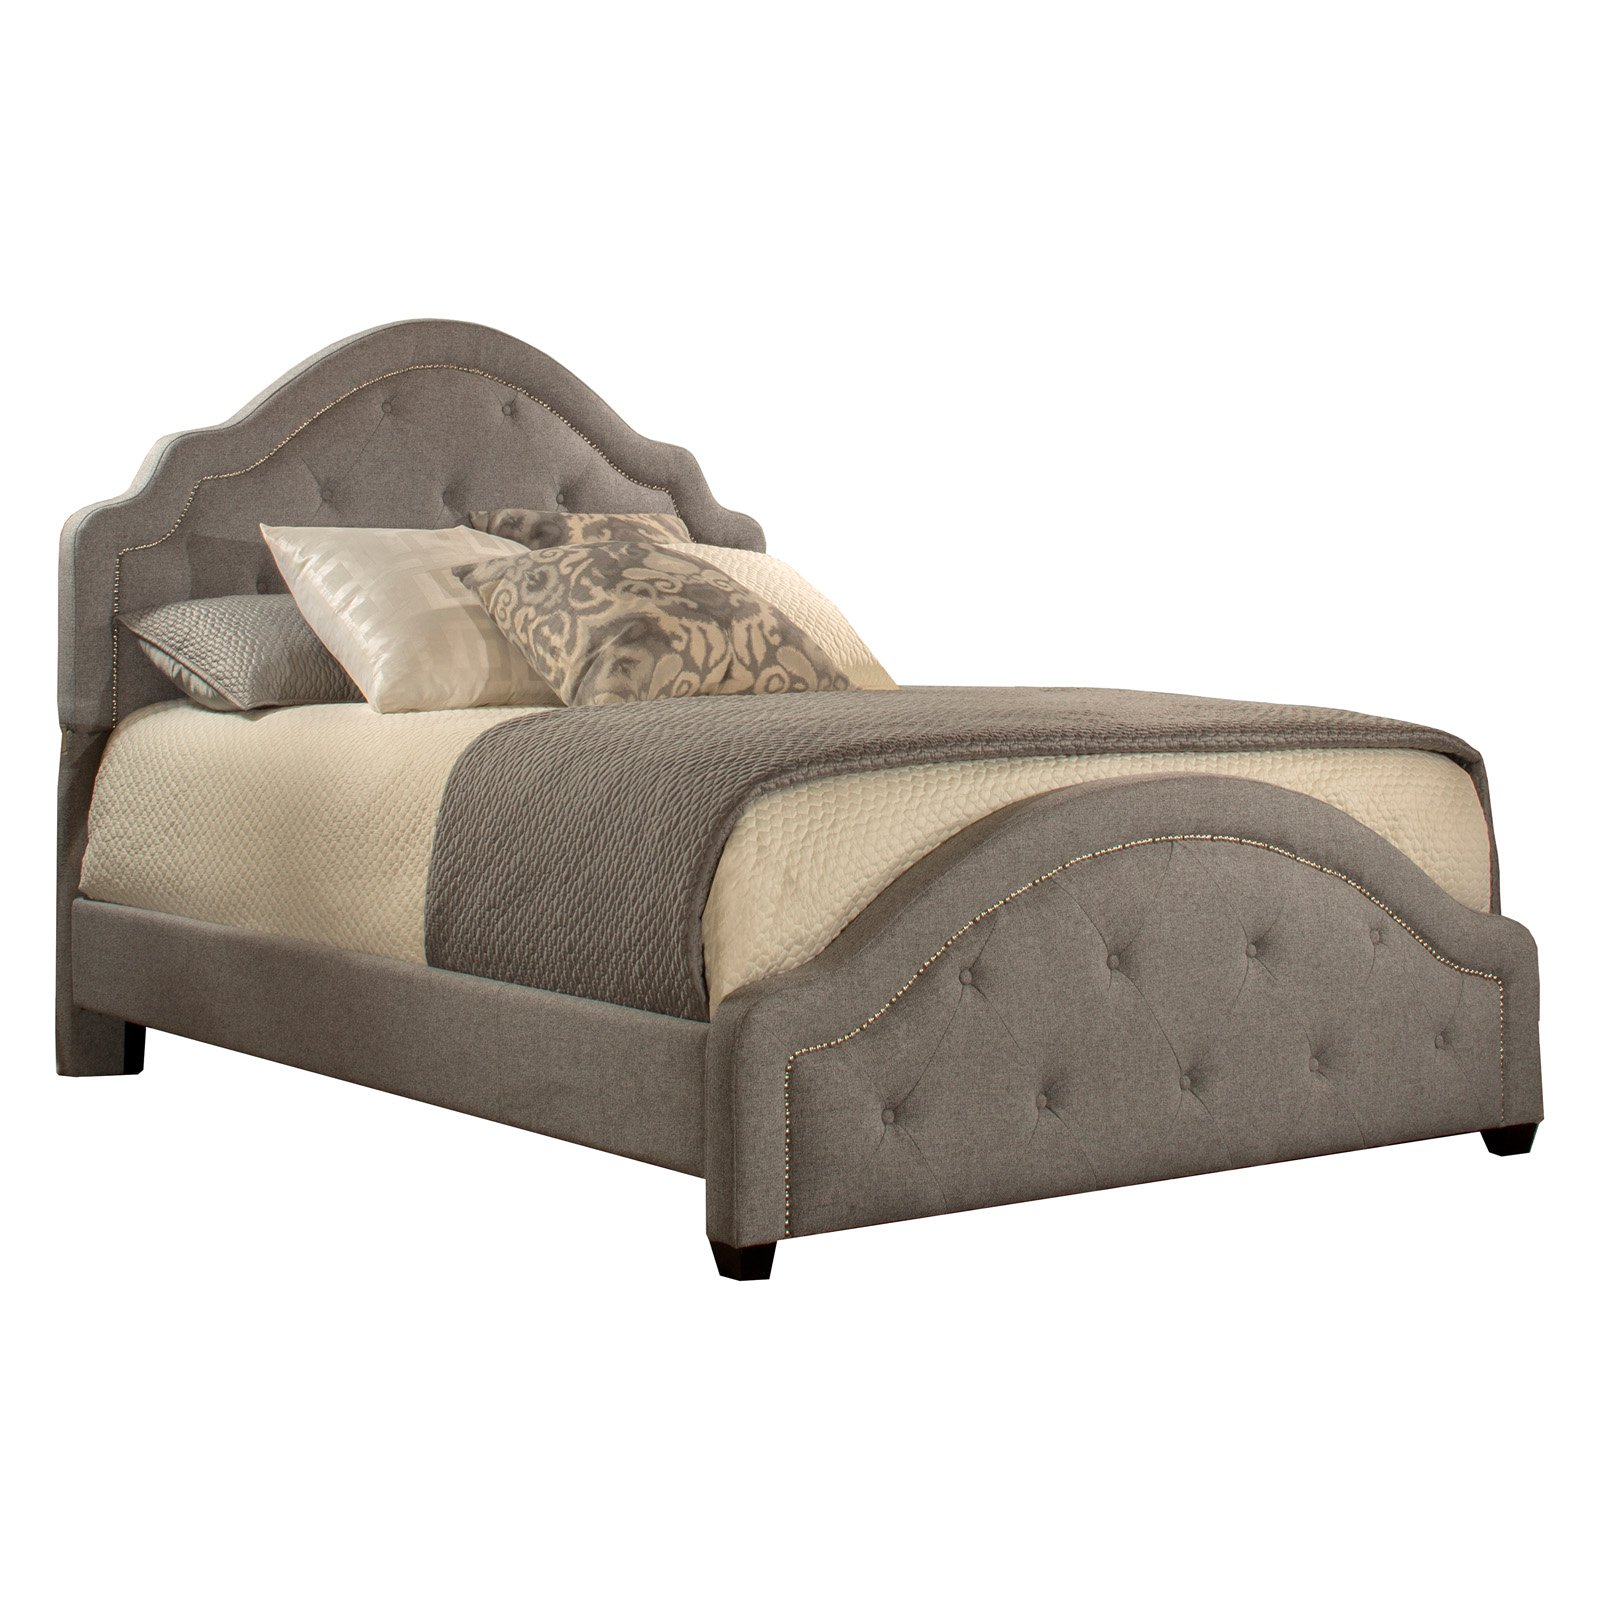 Hillsdale Furniture Belize Headboard and Bedframe, Mulitple Sizes and Colors